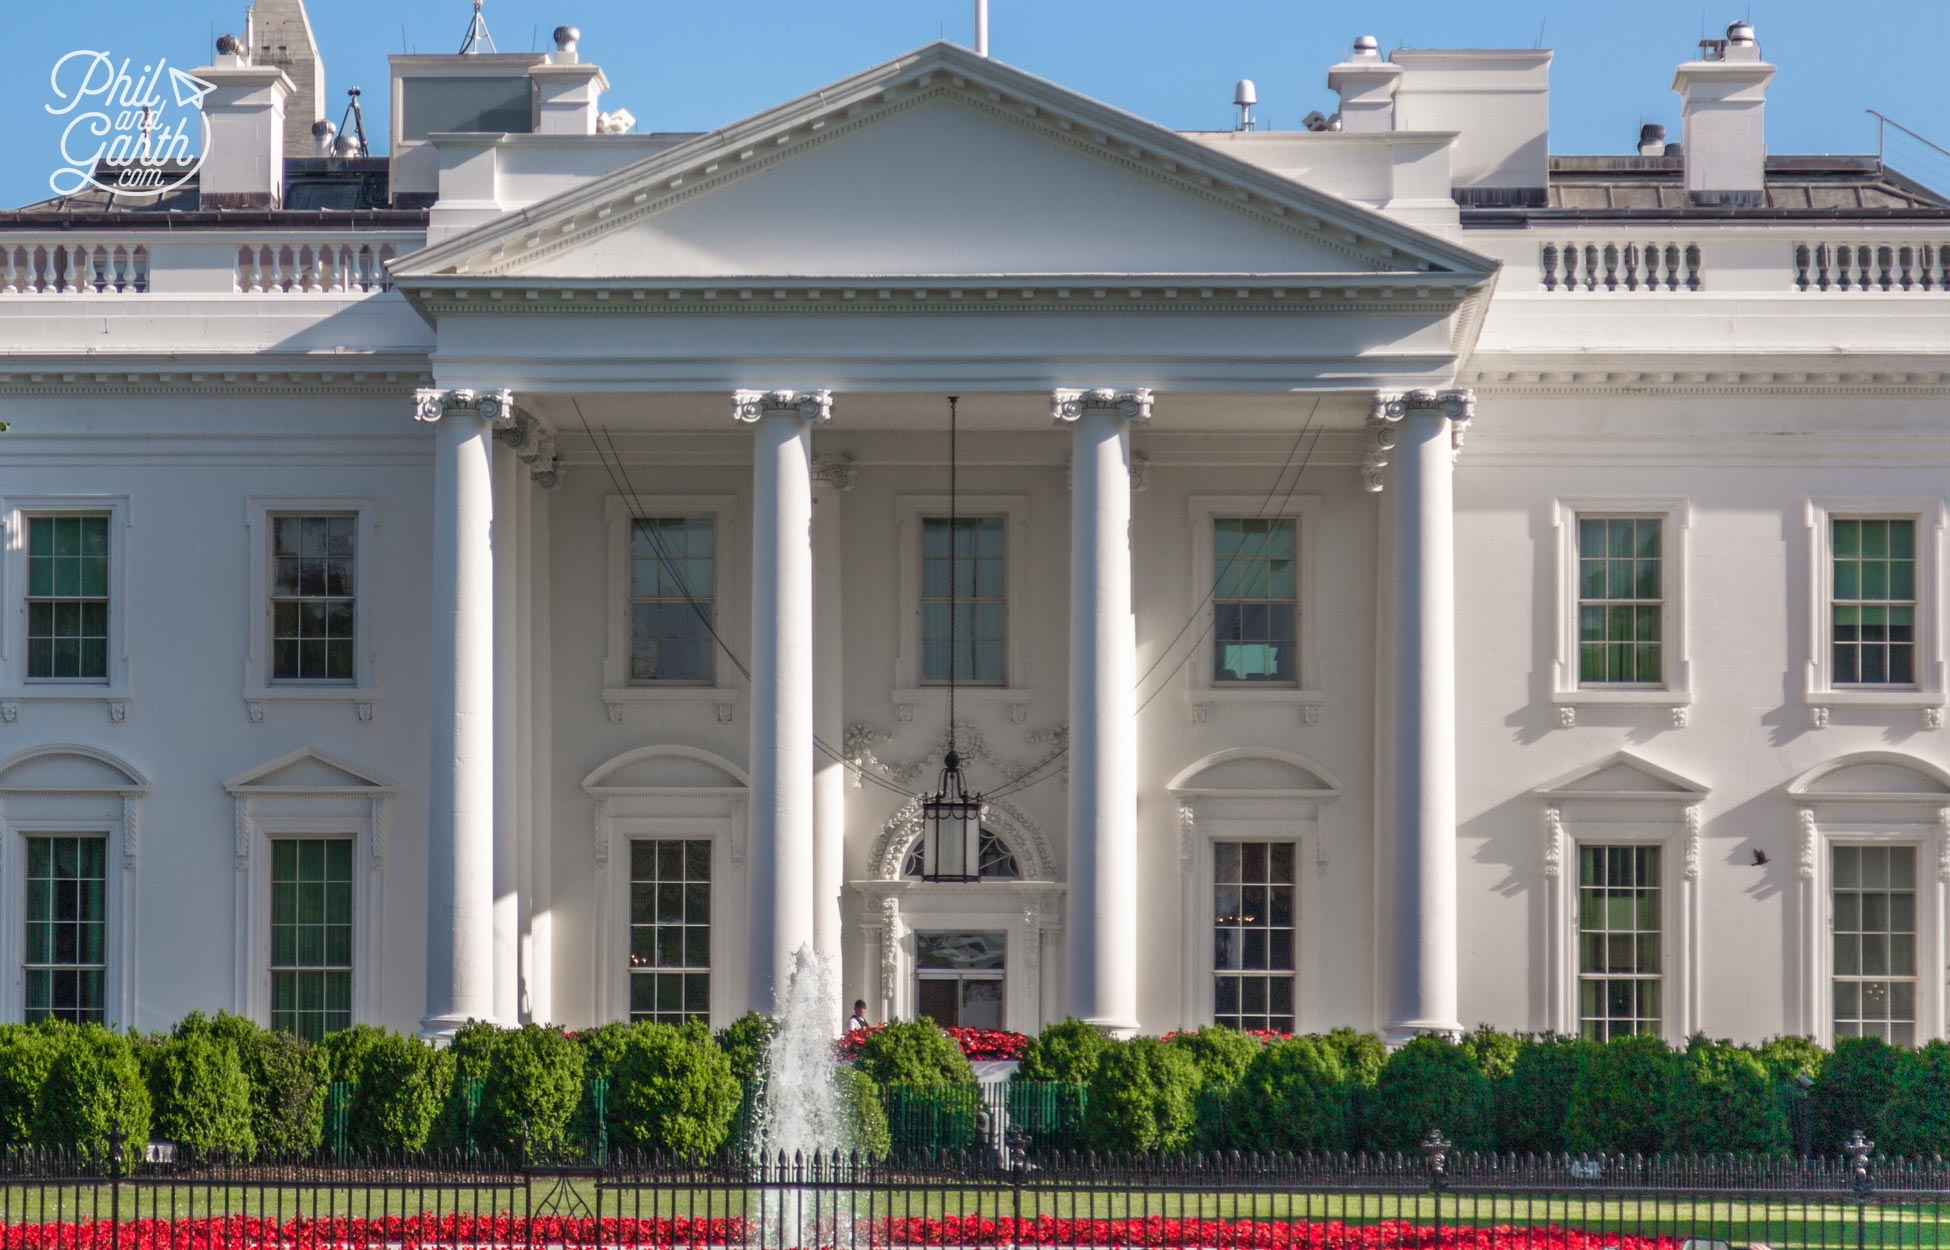 The White House has 132 rooms, 35 bathrooms, and 6 levels in parts